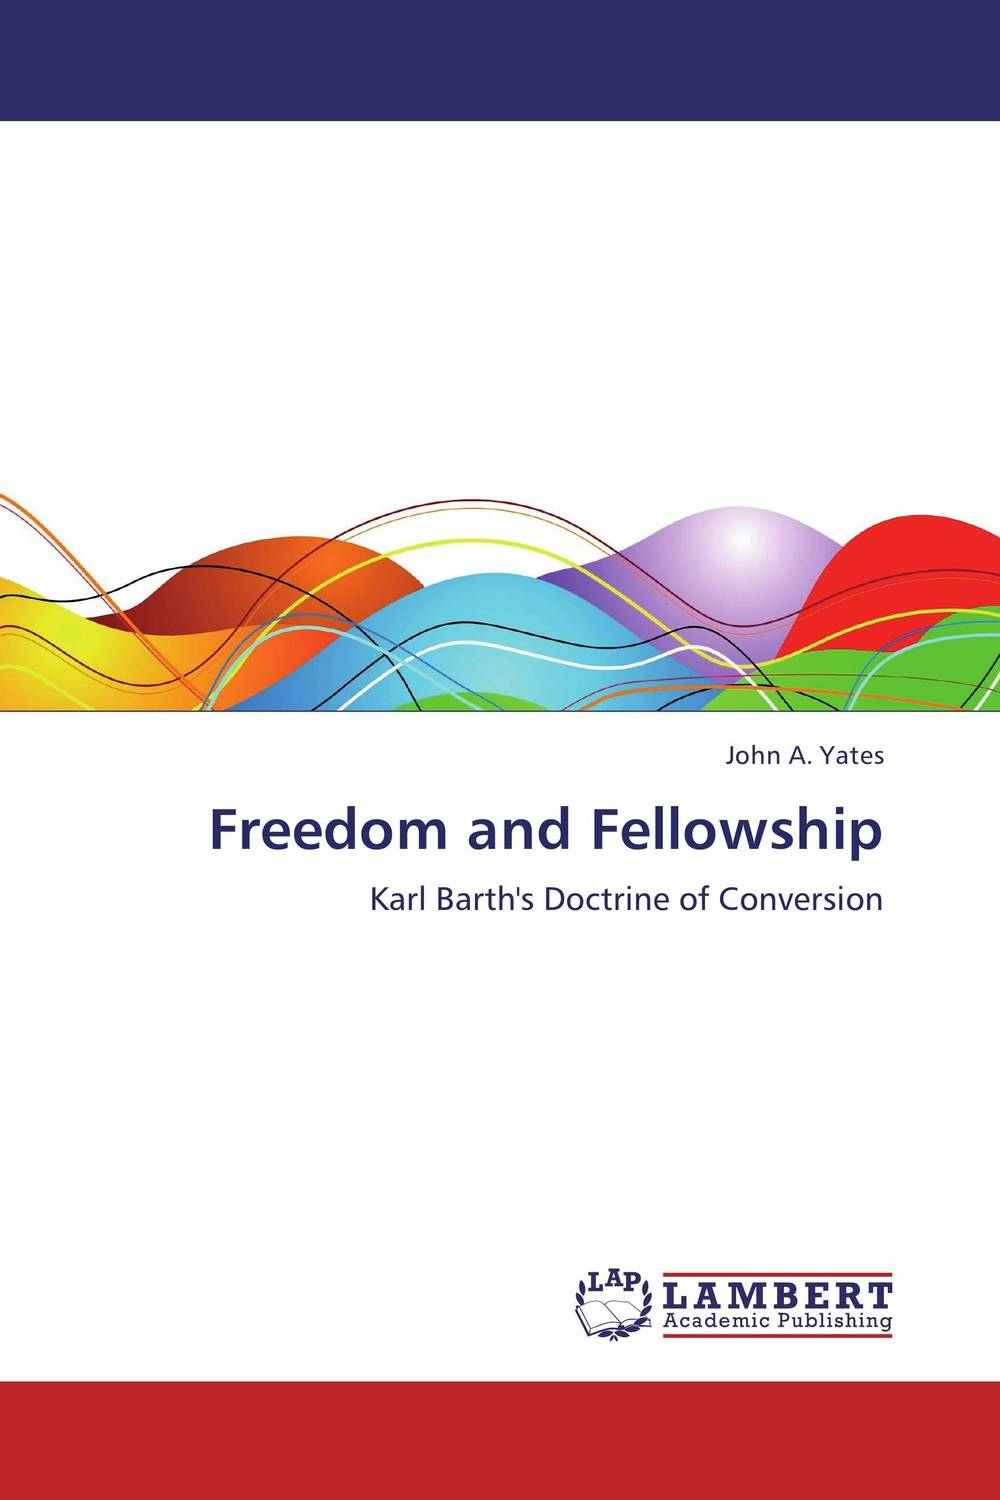 Freedom and Fellowship themes in biblical theology